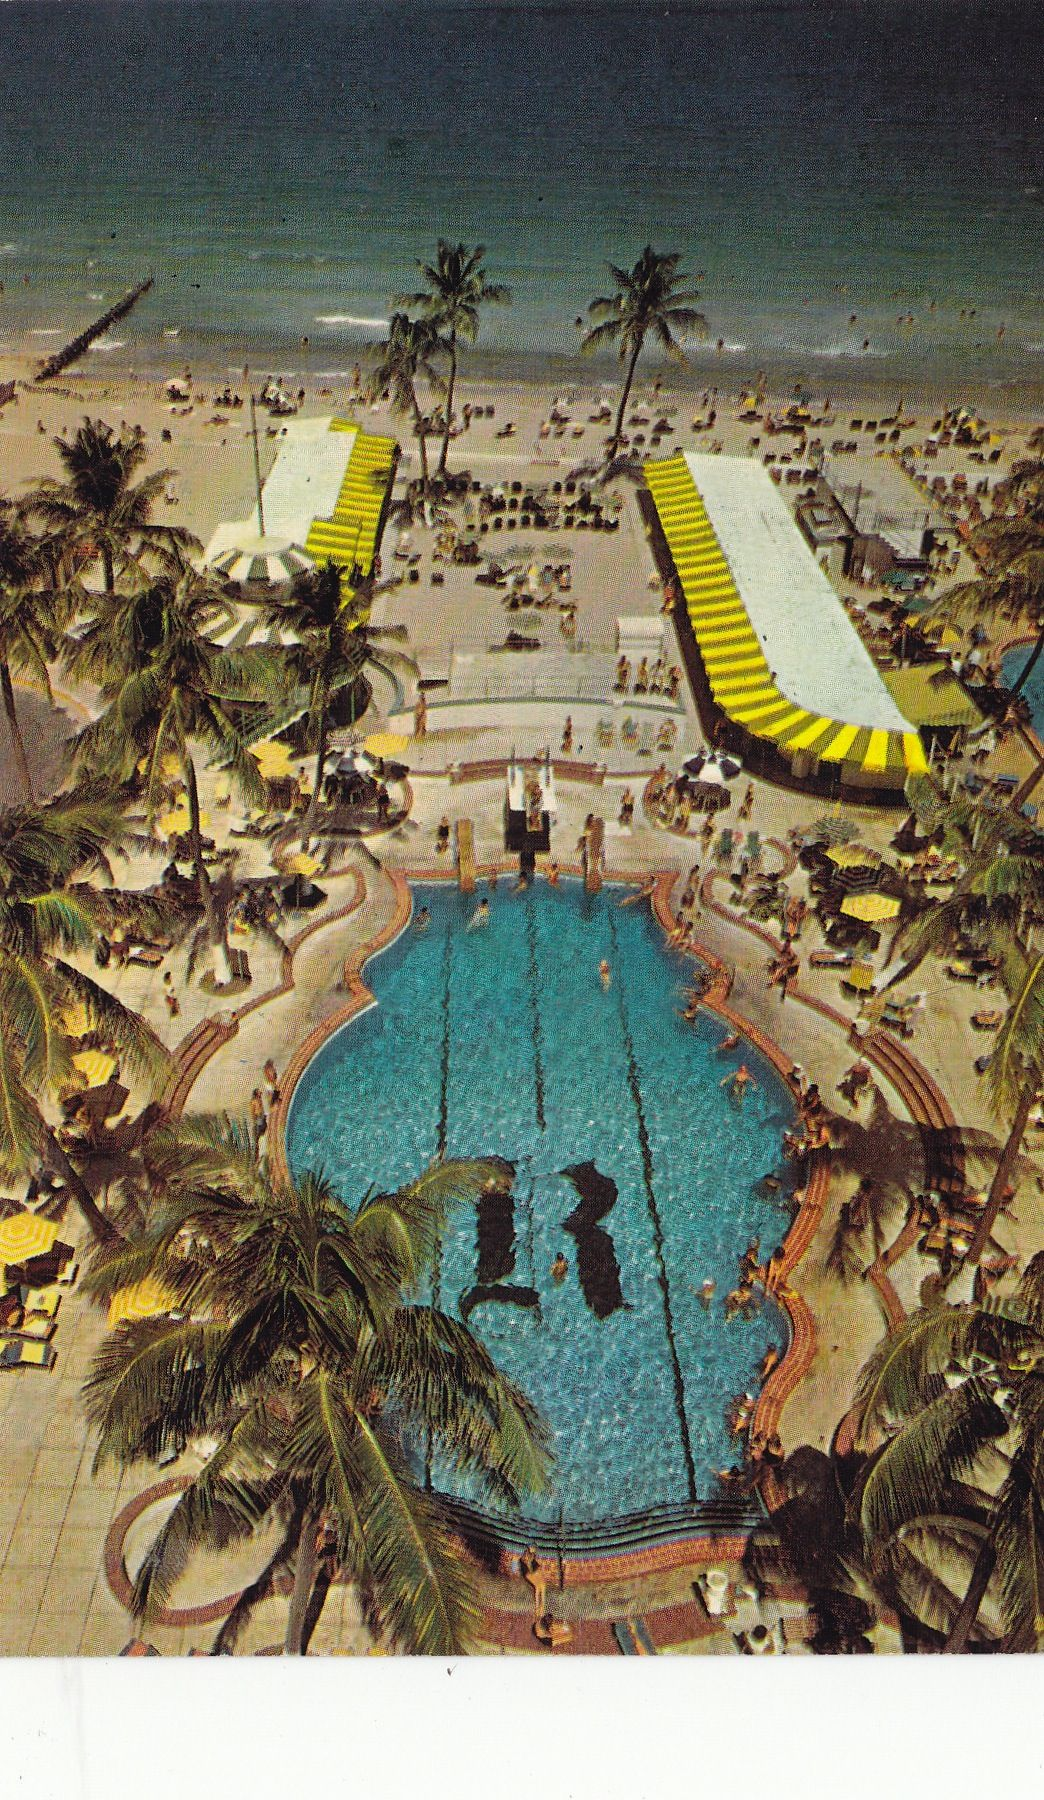 1978 Wz There With Mom Dadthe Raleigh Hotel Miami Beach Fl Frenchconnection Fcicecreamsocial